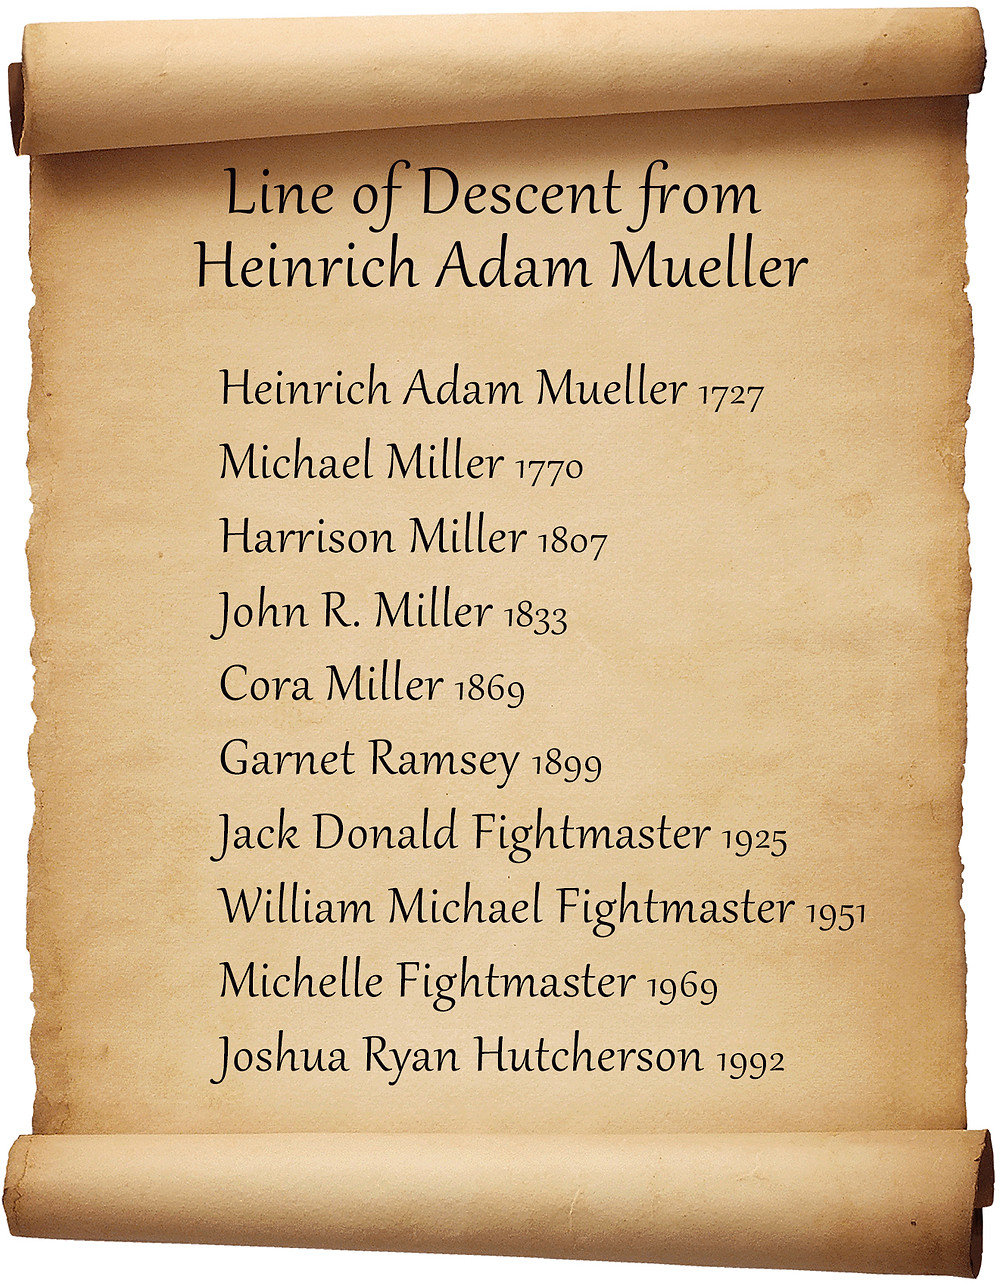 Josh Hutcherson's line of descent from Heinrich Adam Mueller. / Chart by Mike Batie